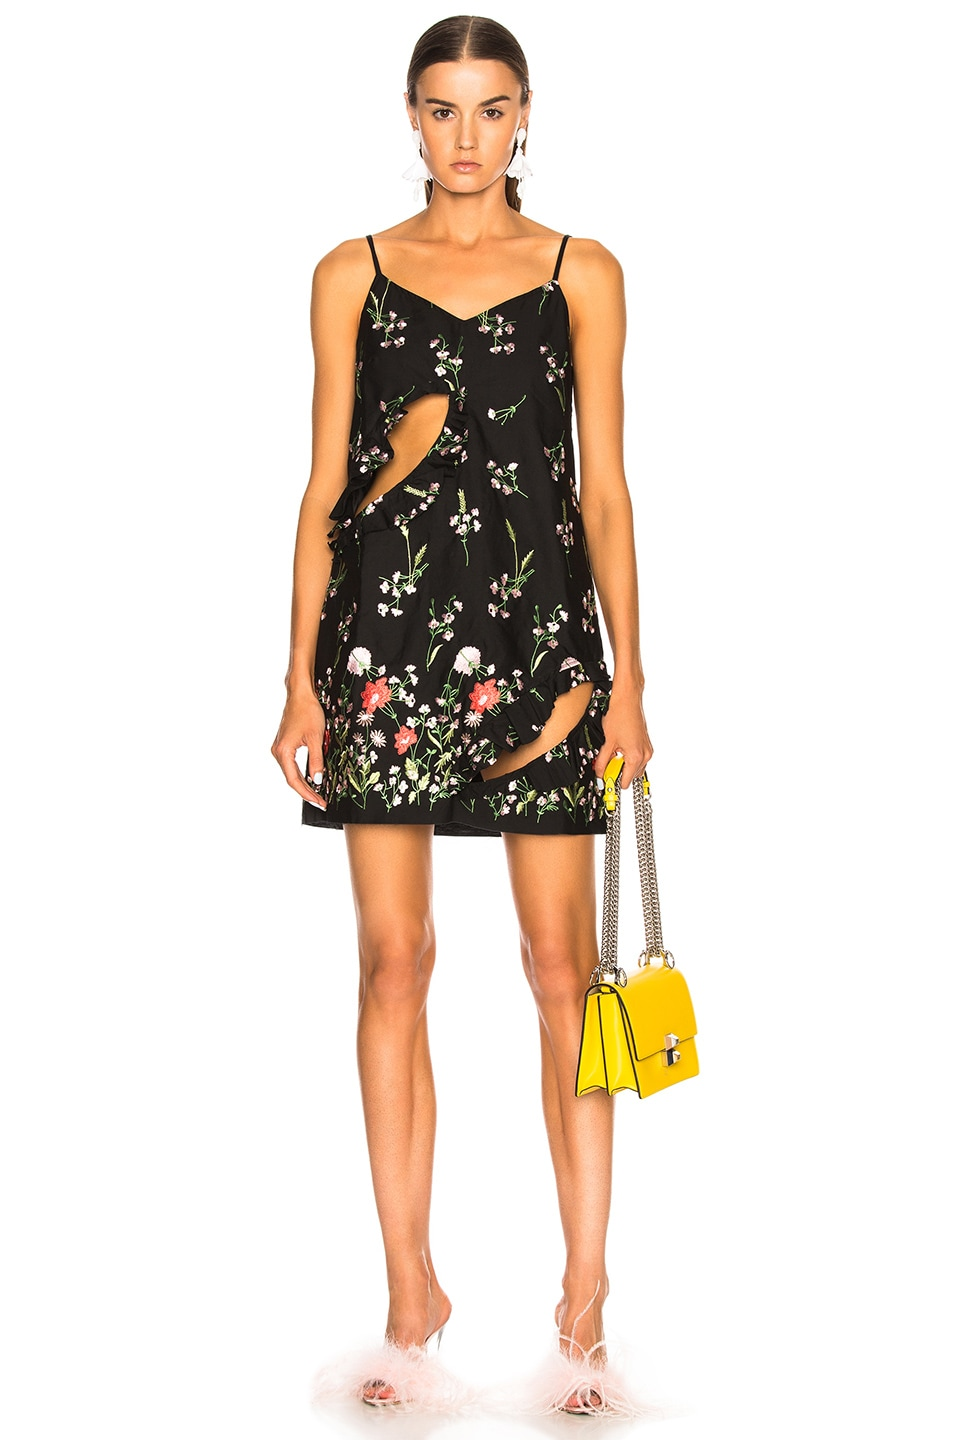 Marques ' Almeida Embroidered Slip Dress in Black,Floral